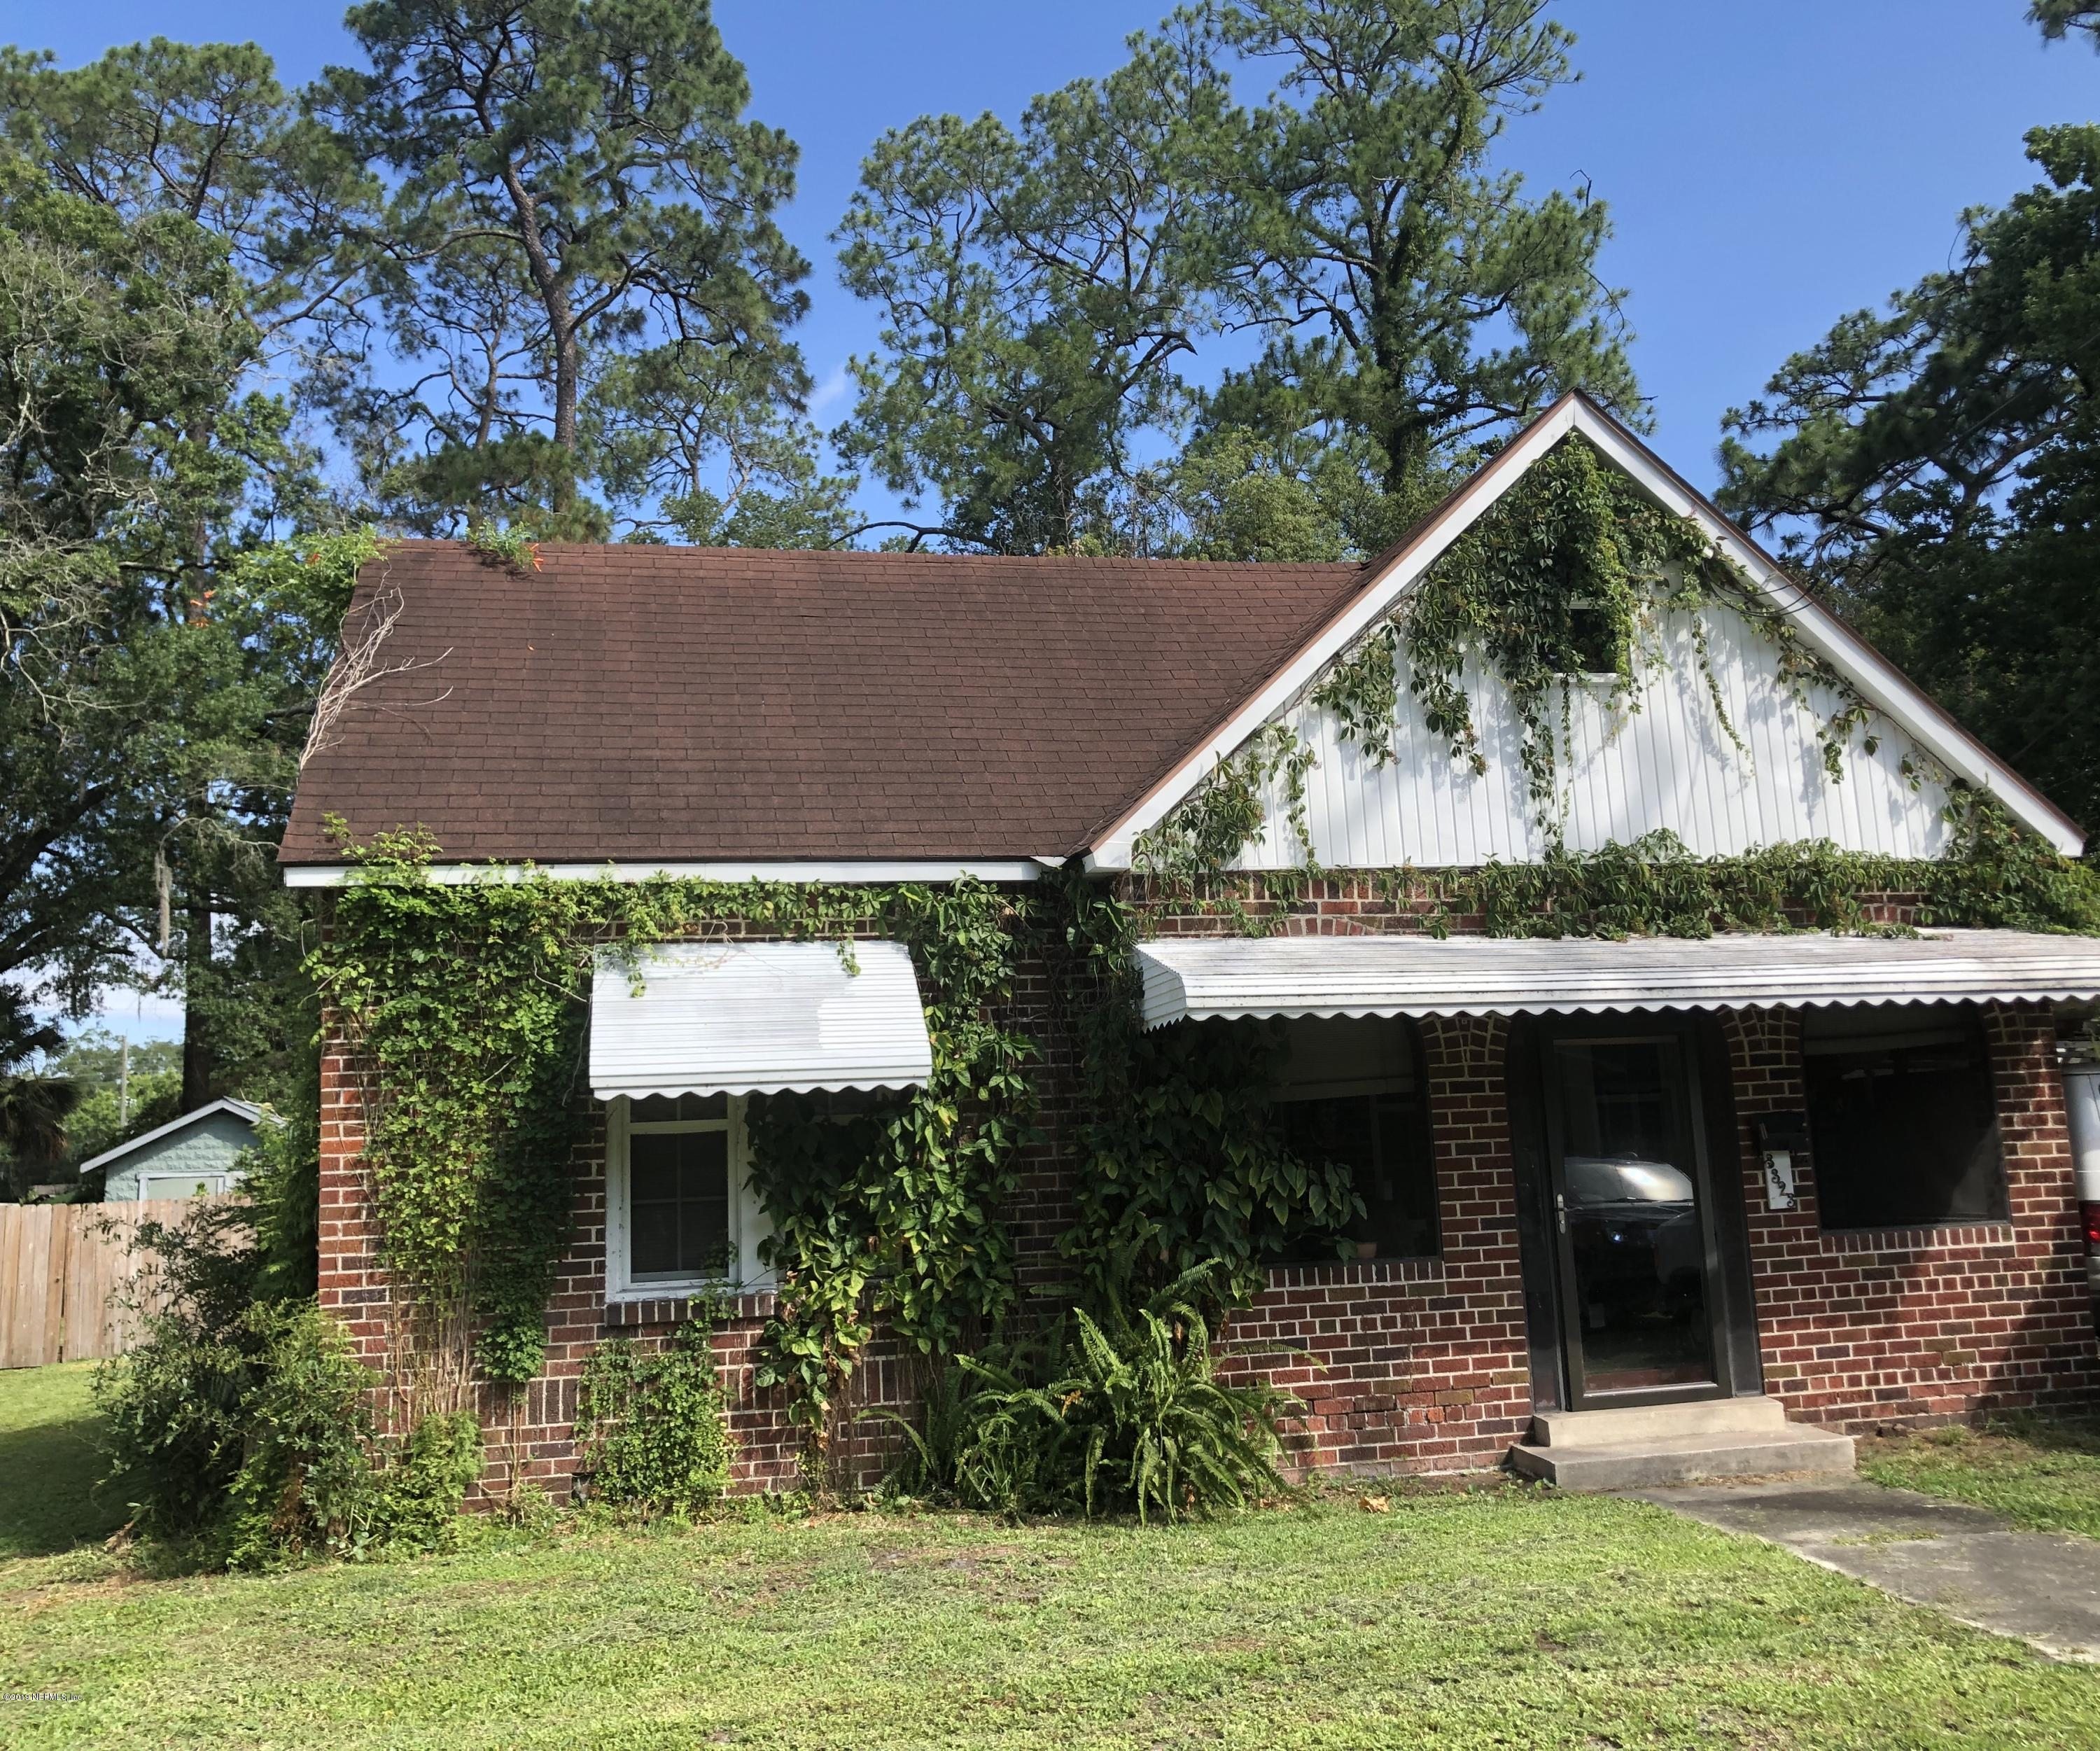 3323 RANDALL, JACKSONVILLE, FLORIDA 32205, 3 Bedrooms Bedrooms, ,1 BathroomBathrooms,Residential - single family,For sale,RANDALL,1000461